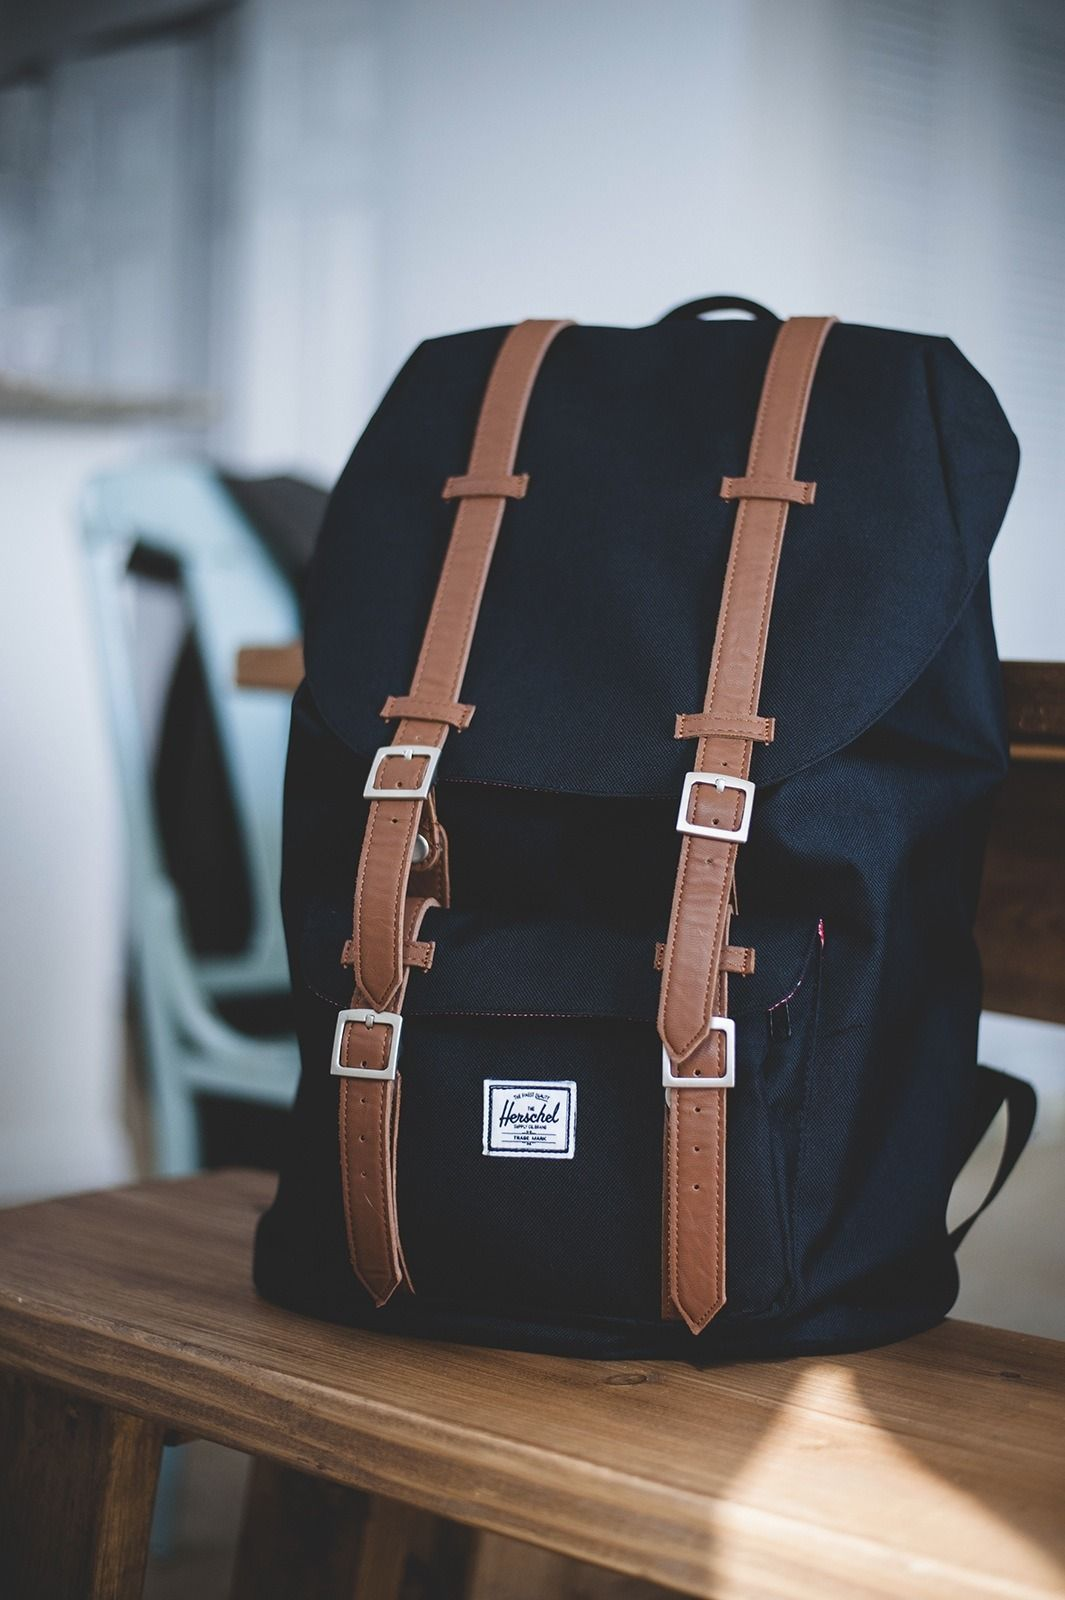 b9232507b5 Mid Size Herschel Little America Backpack in Navy or Black (can t decide)..  For Iceland